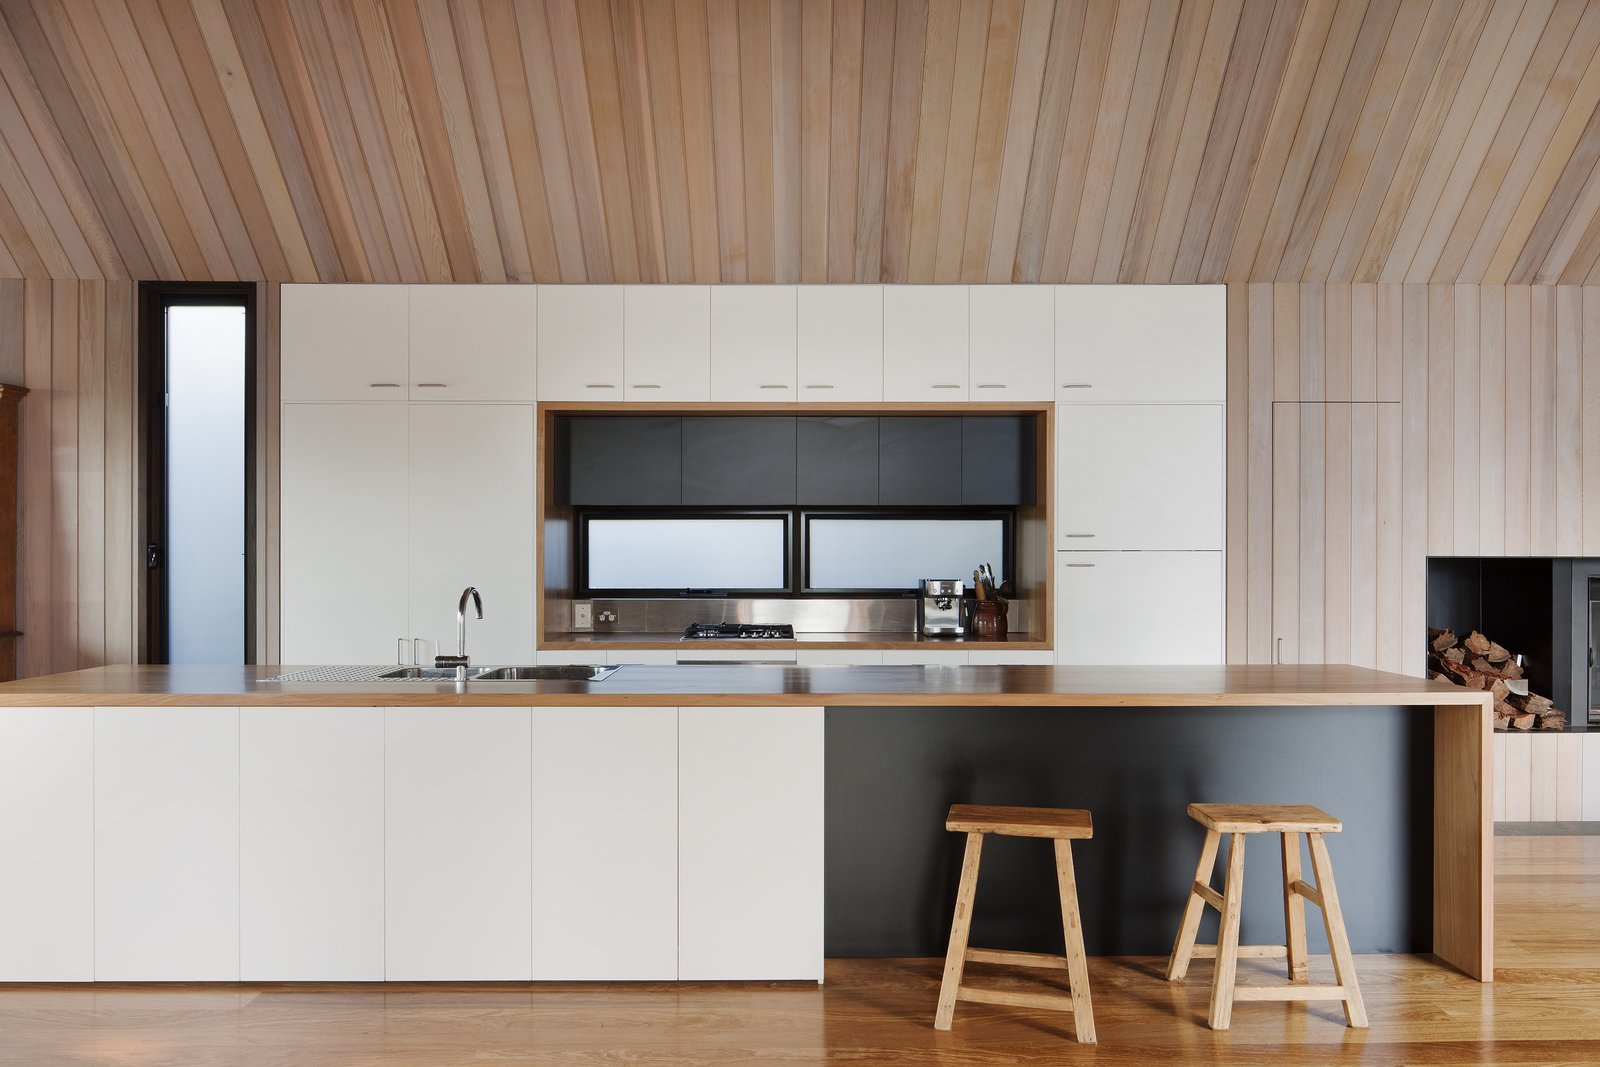 Kitchen, Medium Hardwood Floor, Refrigerator, White Cabinet, Wall Oven, Track Lighting, Wood Counter, Cooktops, and Drop In Sink A streamlined kitchen is defined by its white cabinetry against the surrounding cedar walls. The floor is composed of Ash wood.  Photo 6 of 9 in Three Connected Pavilions Form This Airy Australian Beach Retreat